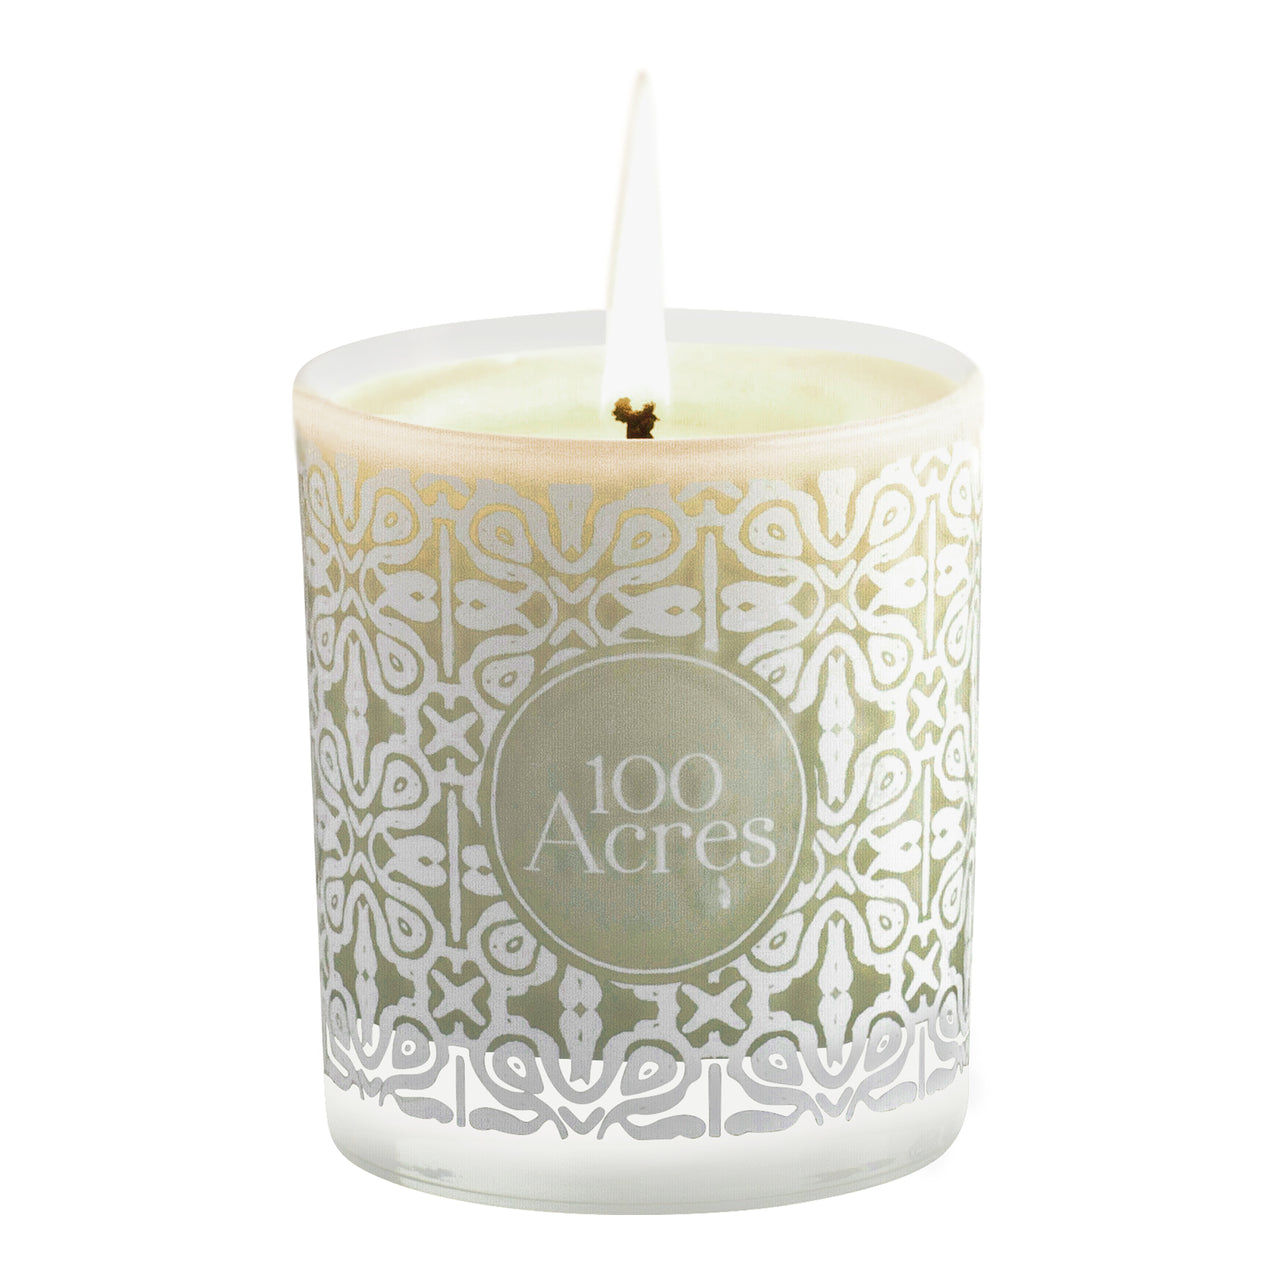 100 Acres Signature Single-Wick Candle - 100% Natural Ingredients & Essential Oils | 100 Acres Apothecary